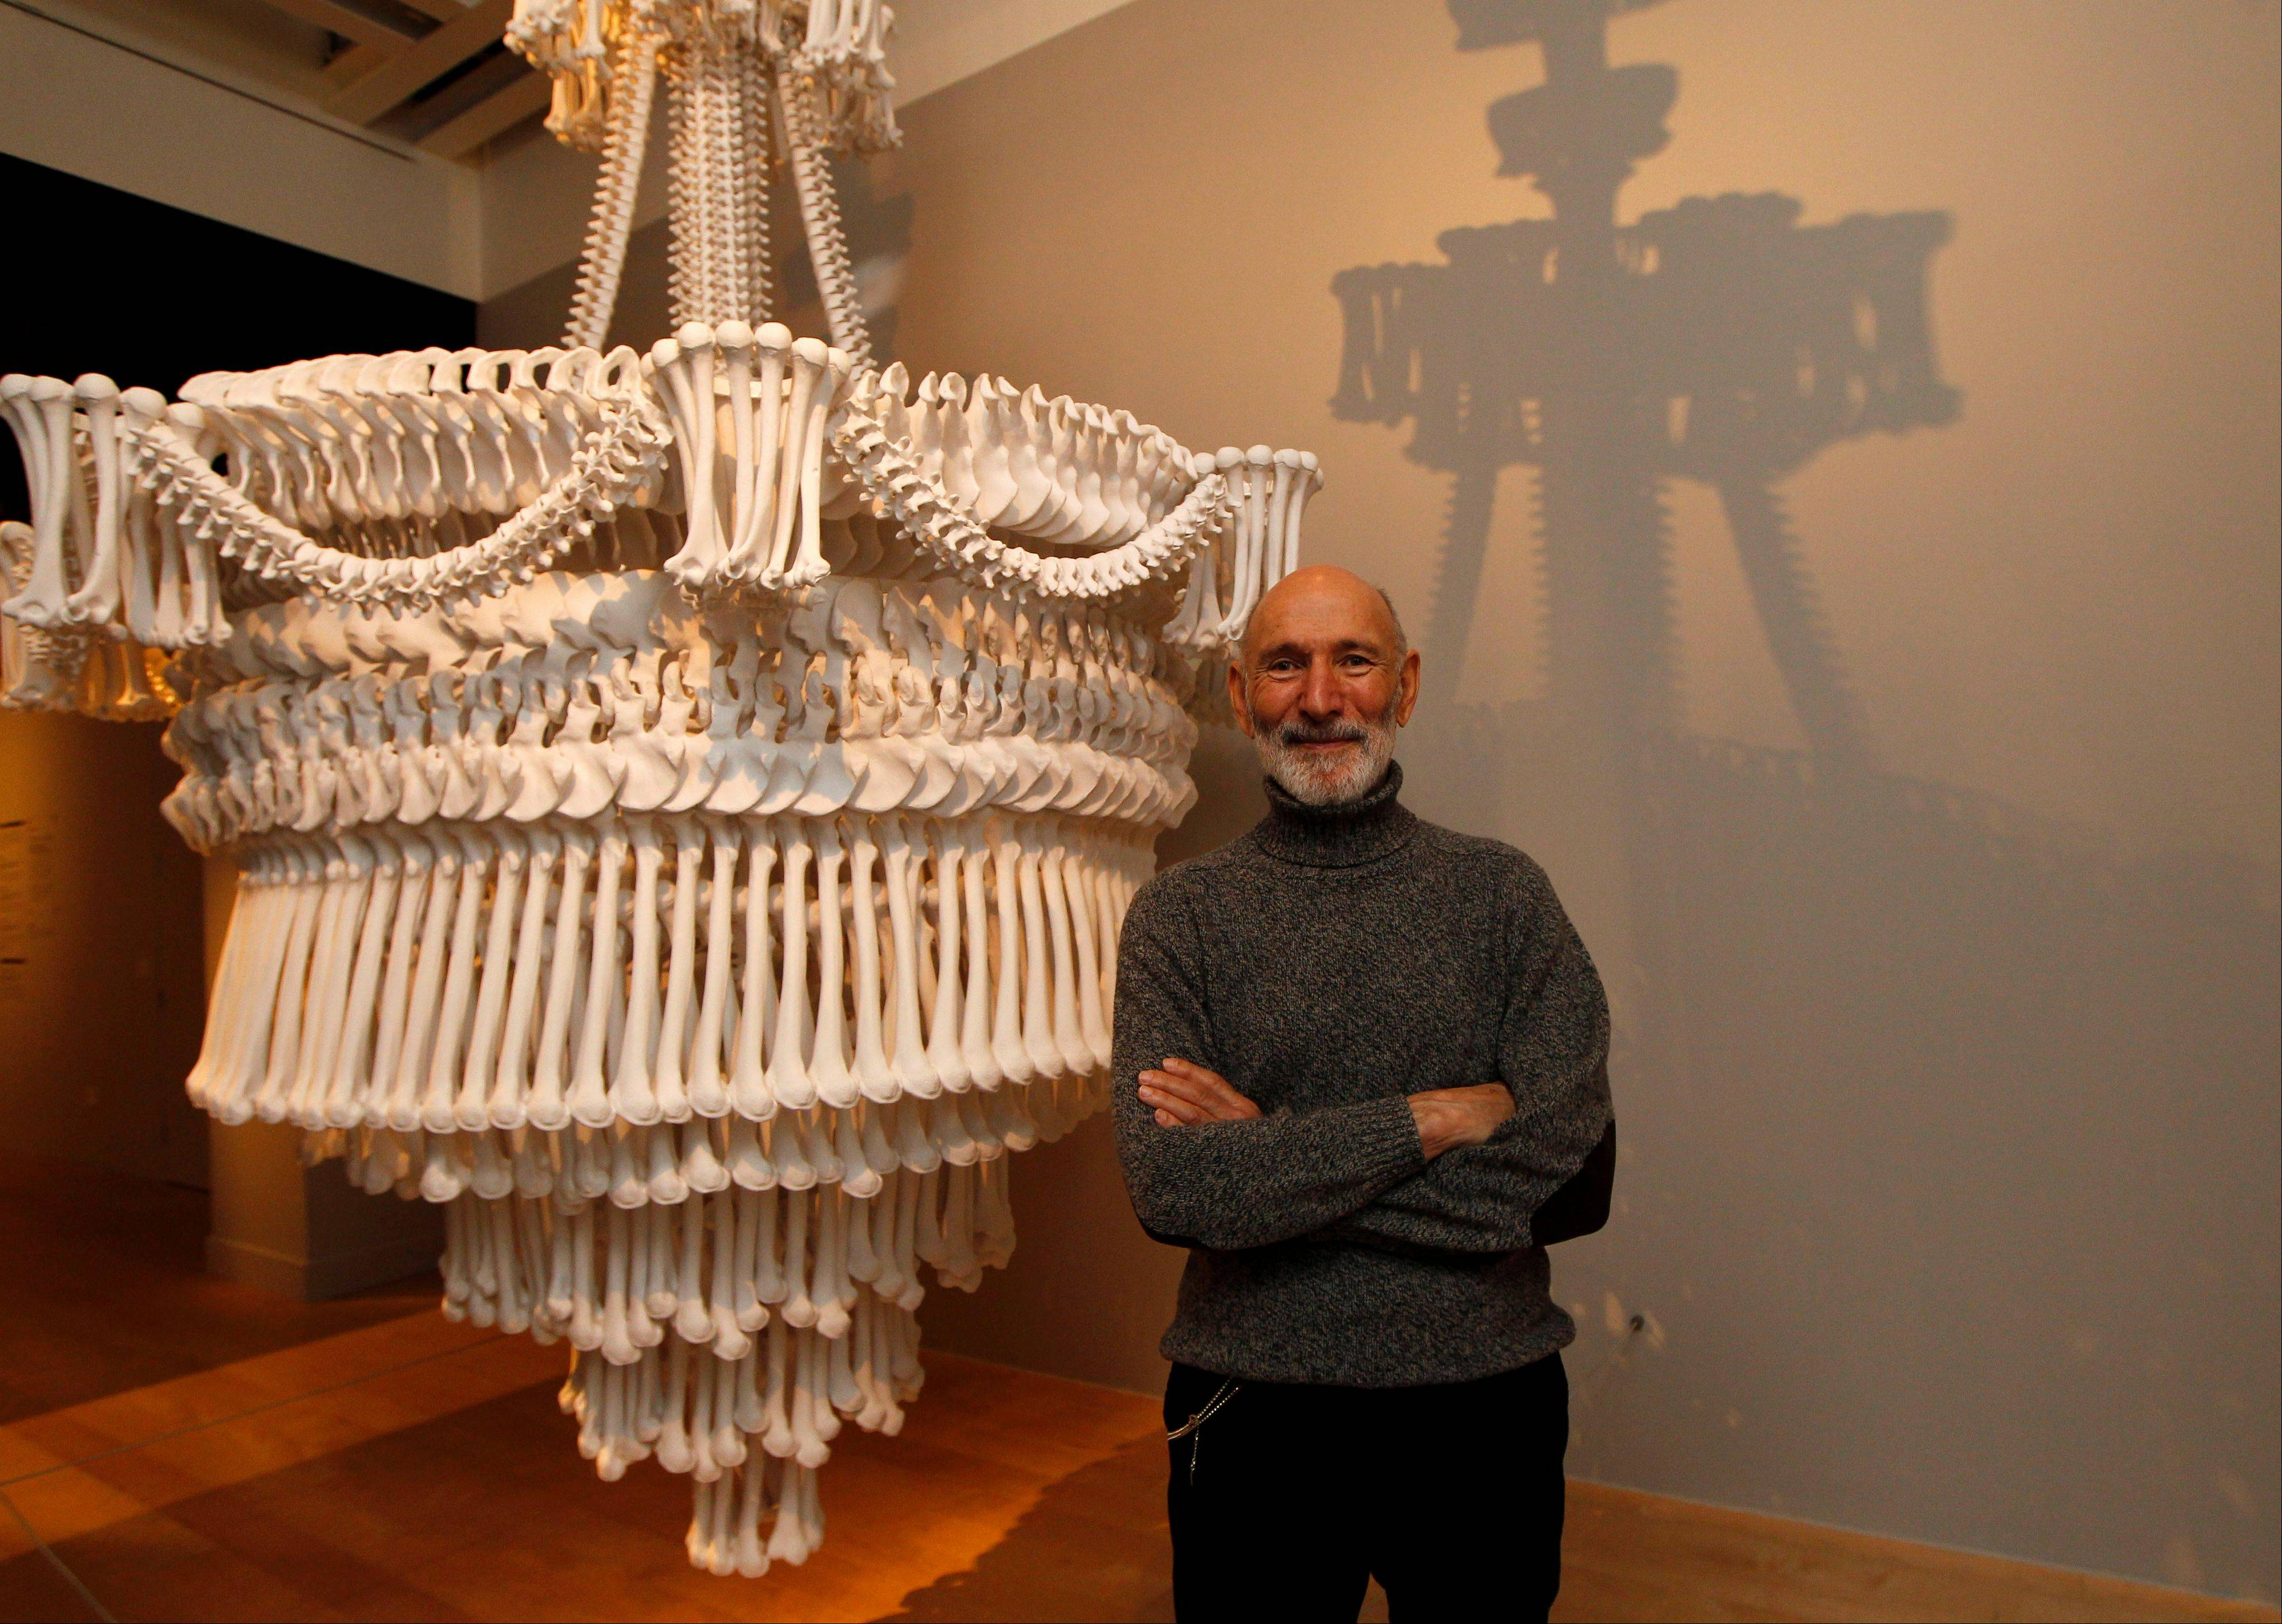 Collector Richard Harris poses with one of his collection of installation 'In the Eyes of Others' by British artist Jodie Carey on display at an exhibition 'Death: The Richard Harris Collection' at the Wellcome Collection gallery in London.